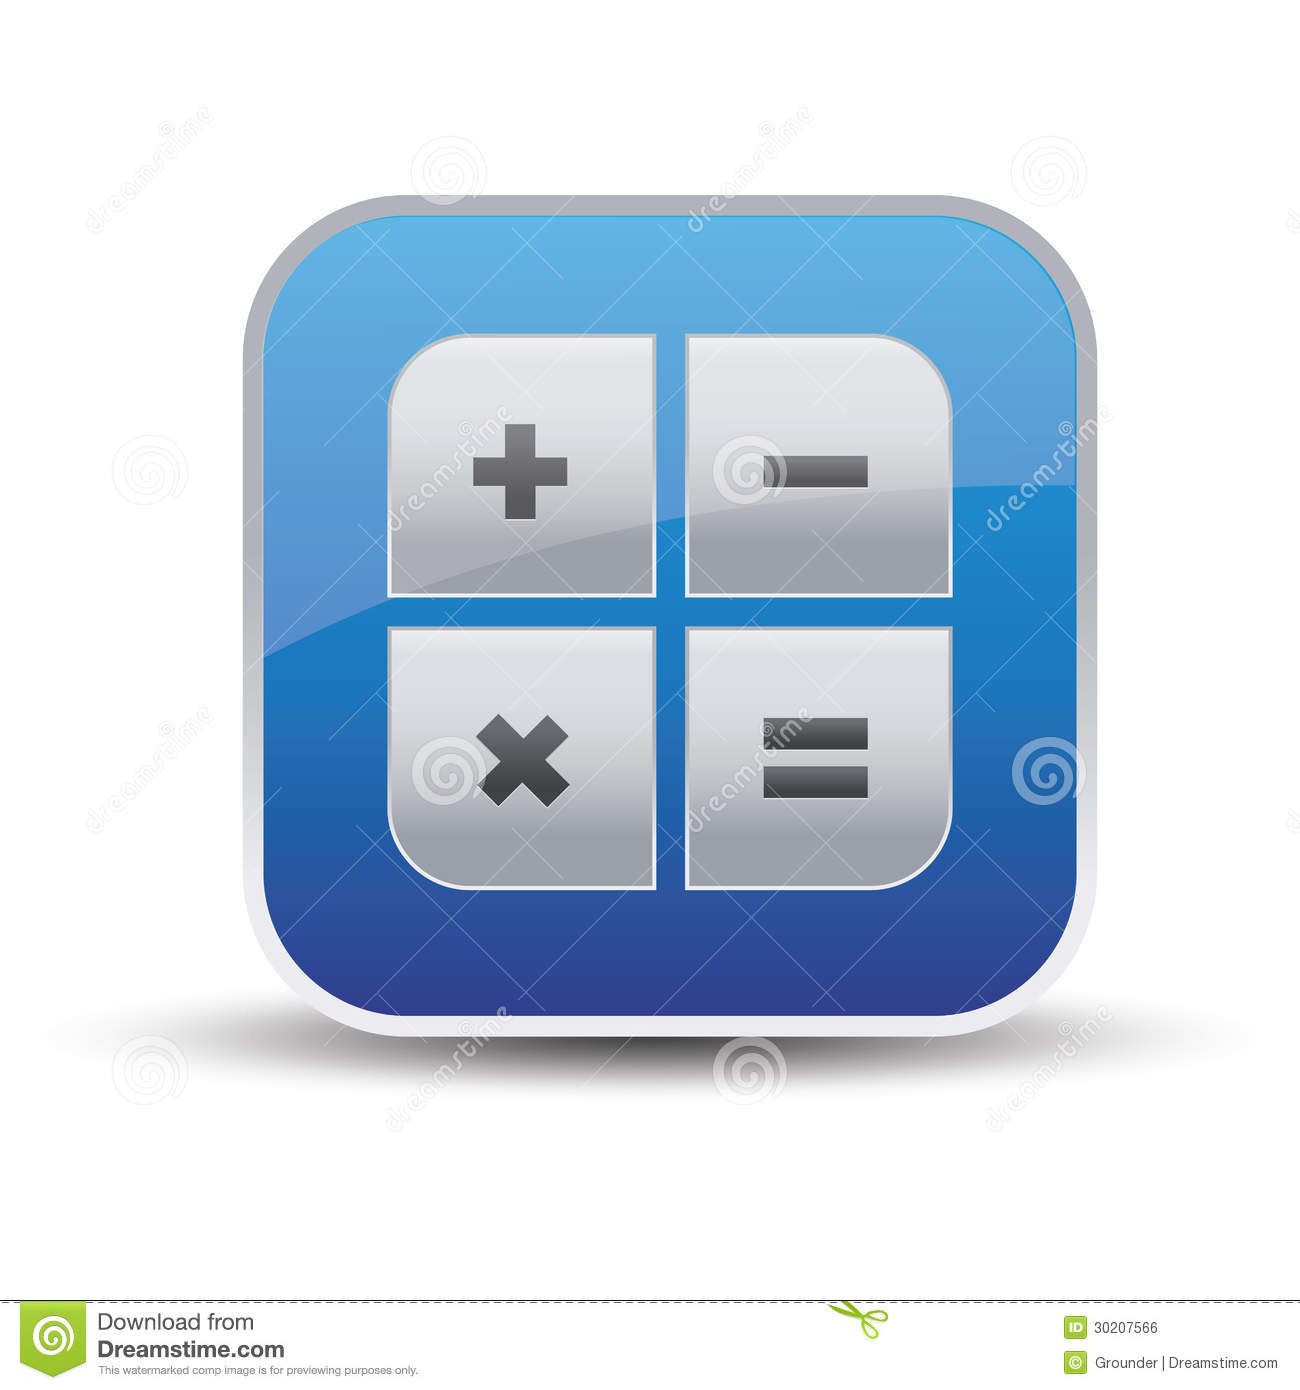 ... Icon - Vector App Royalty Free Stock Image - Image: 30207566: www.dreamstime.com/royalty-free-stock-image-calculator-icon-vector...